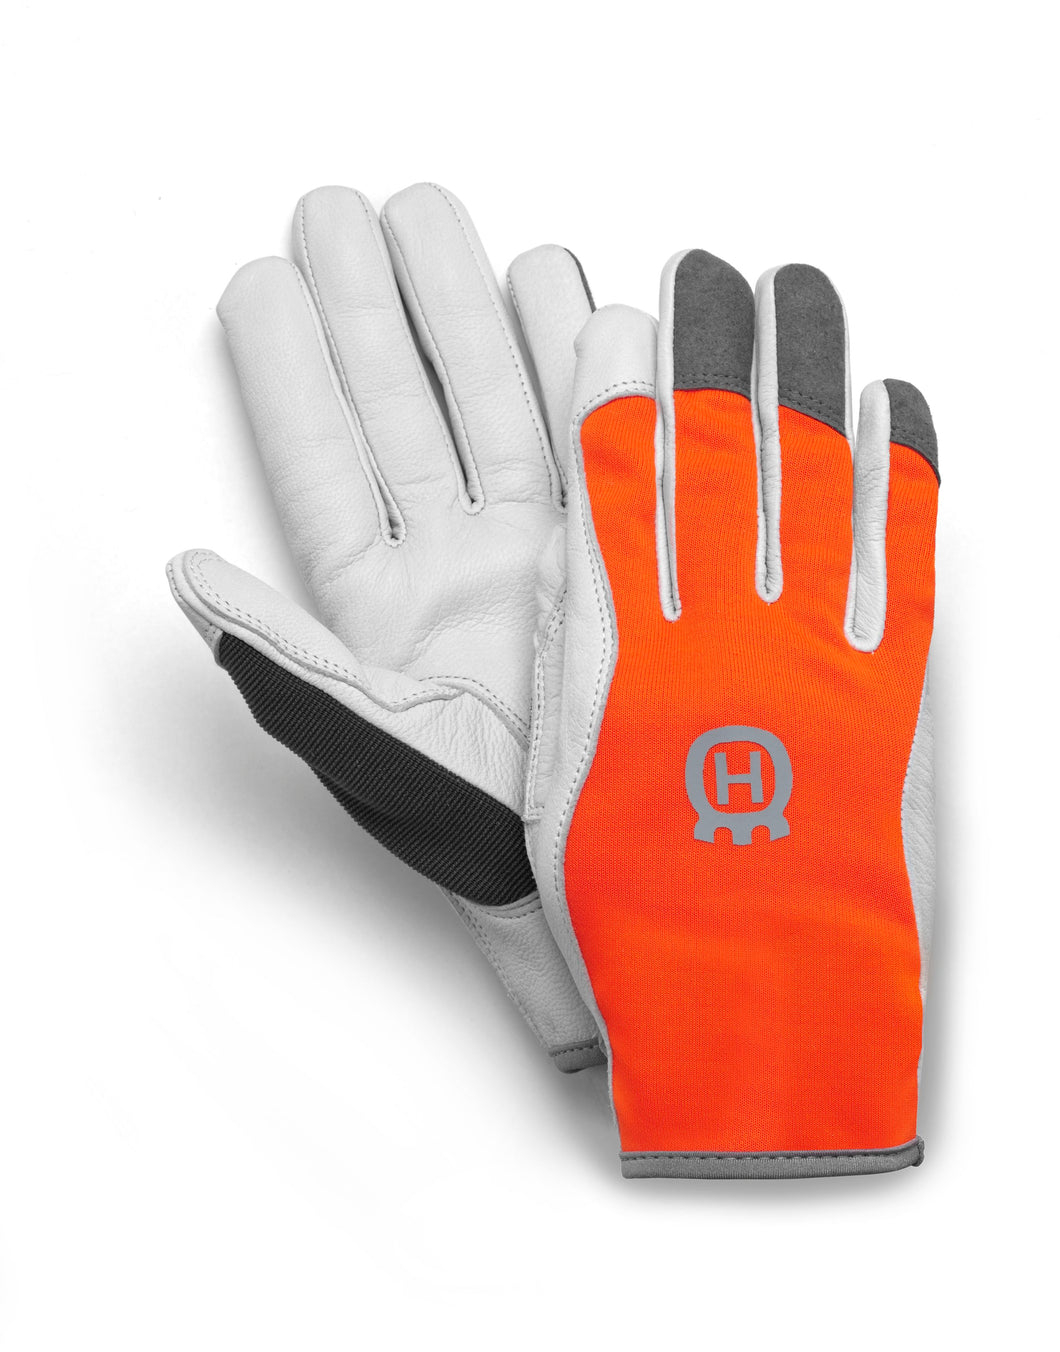 Husqvarna Classic Light Gloves - Without Saw Protection